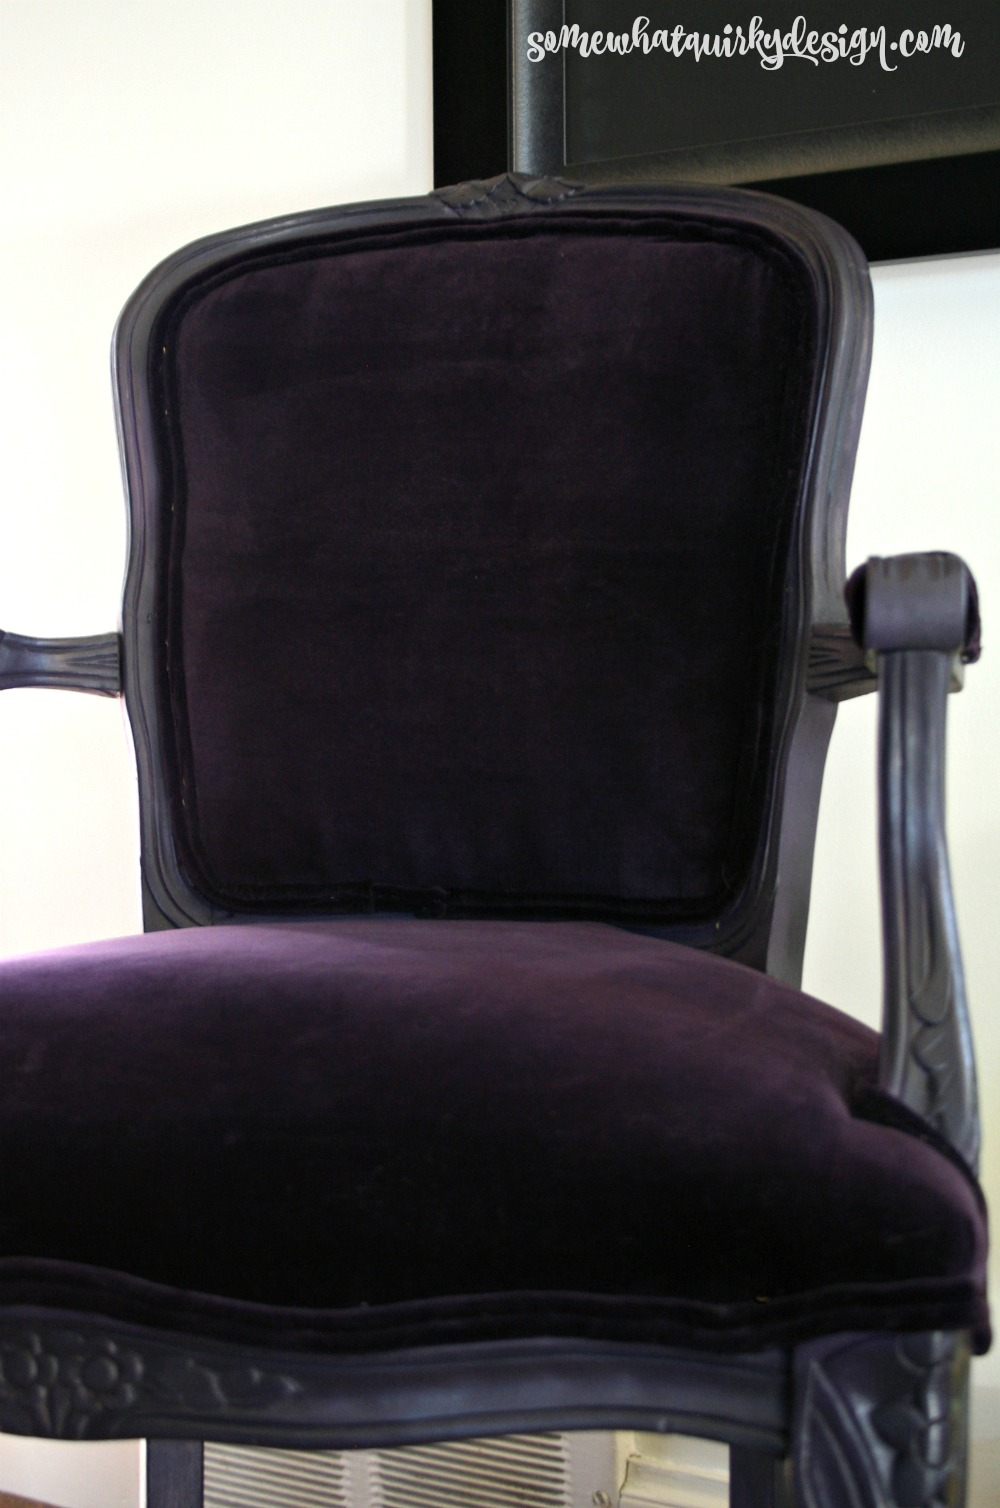 Purple velvet chair - Then I Buffed The Whole Chair And Took Some New Pictures